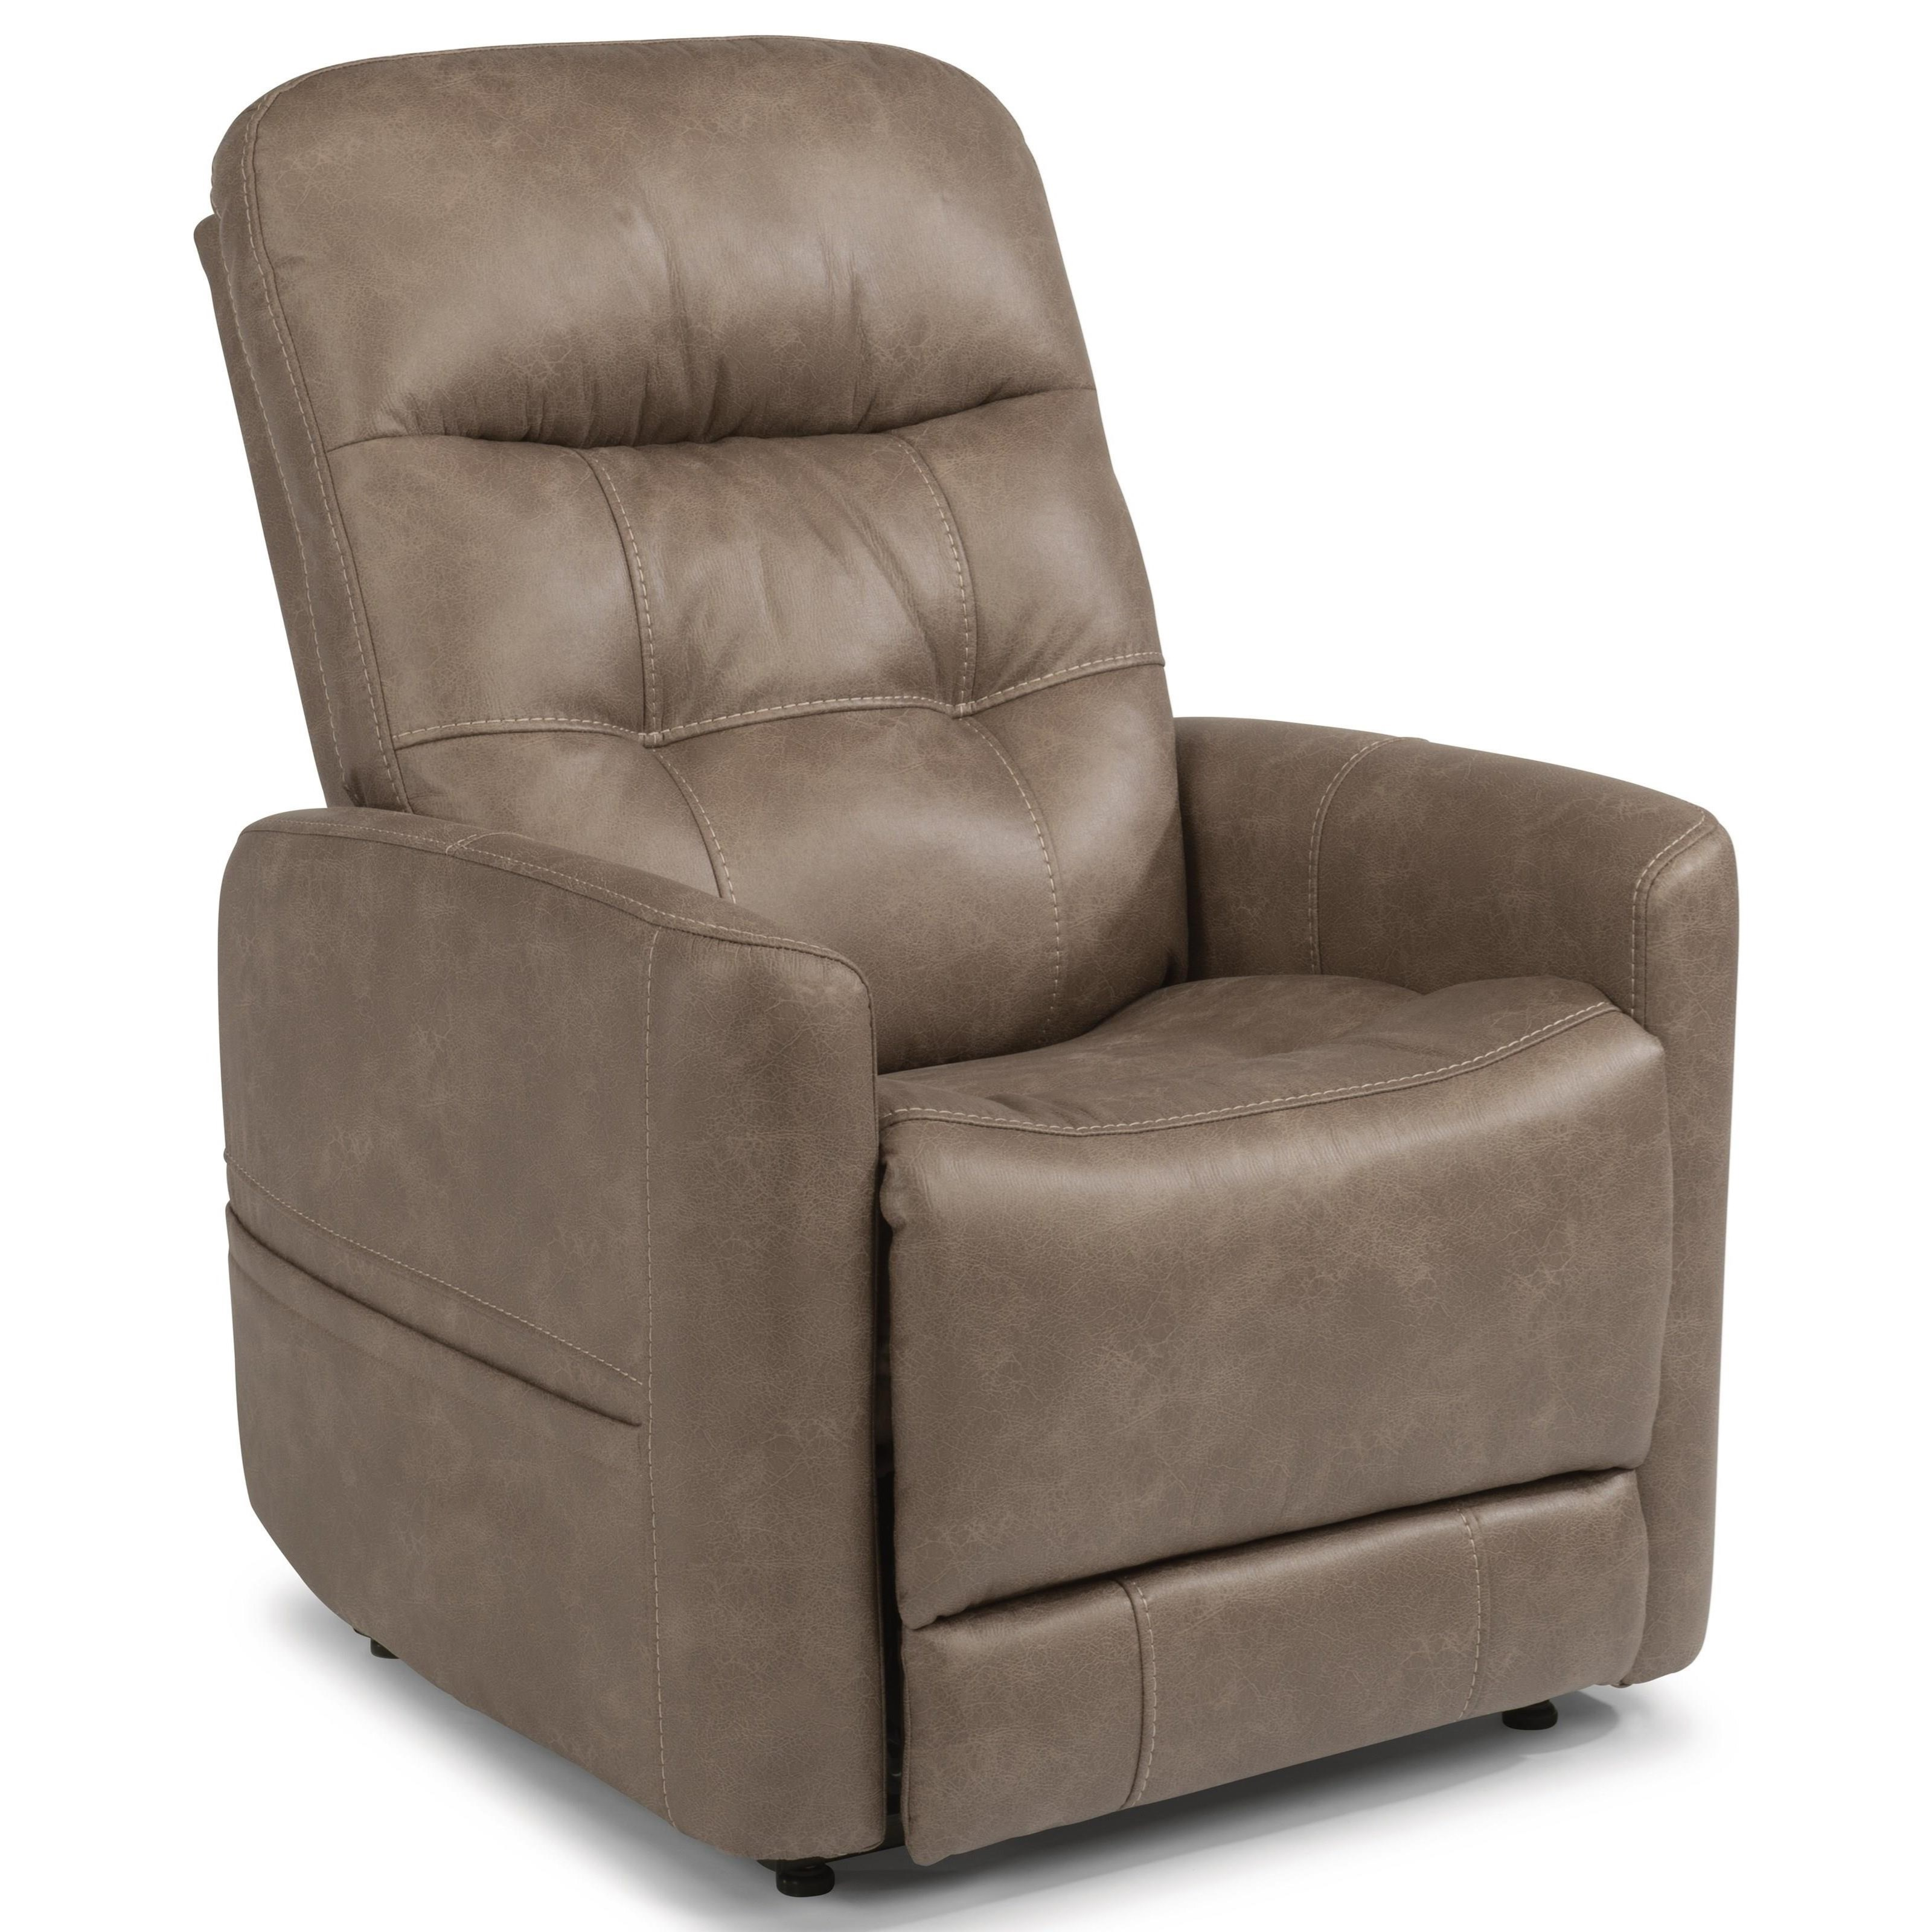 Flexsteel Latitudes Kenner Power Lift Recliner With Power Headrest And Lumbar Fisher Home Furnishings Lift Chairs